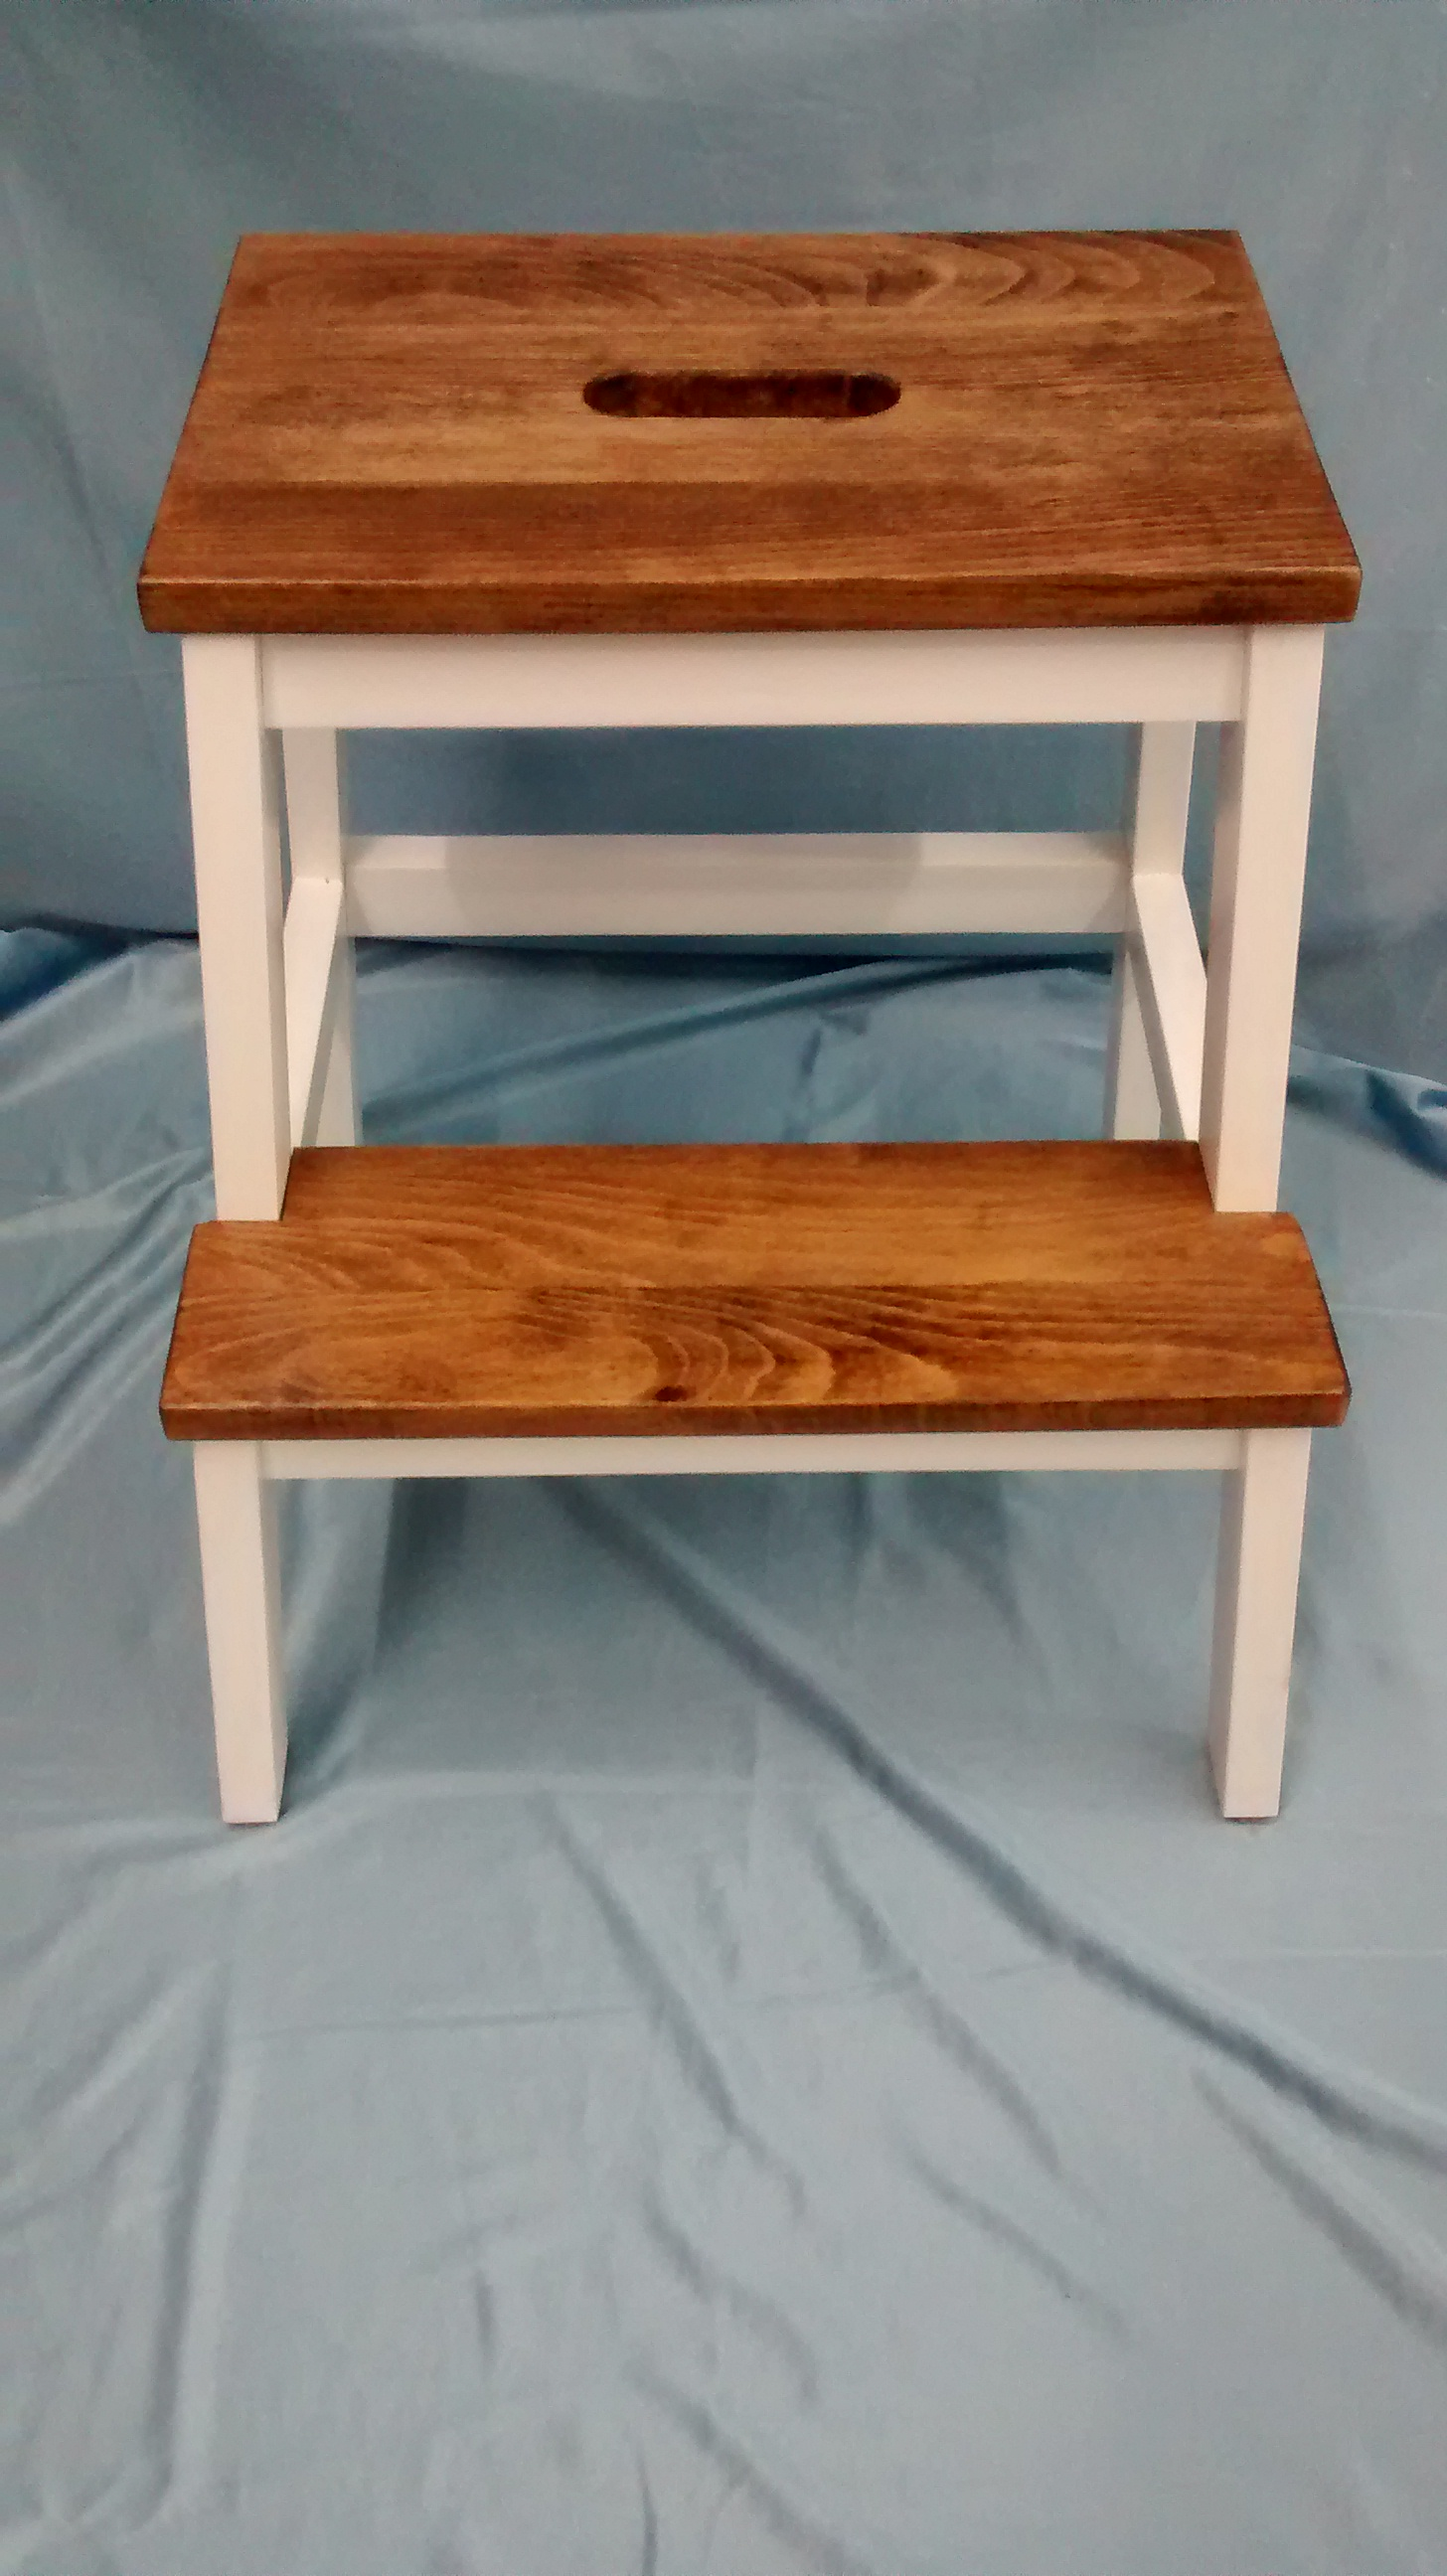 Upgraded Two-Step Stool